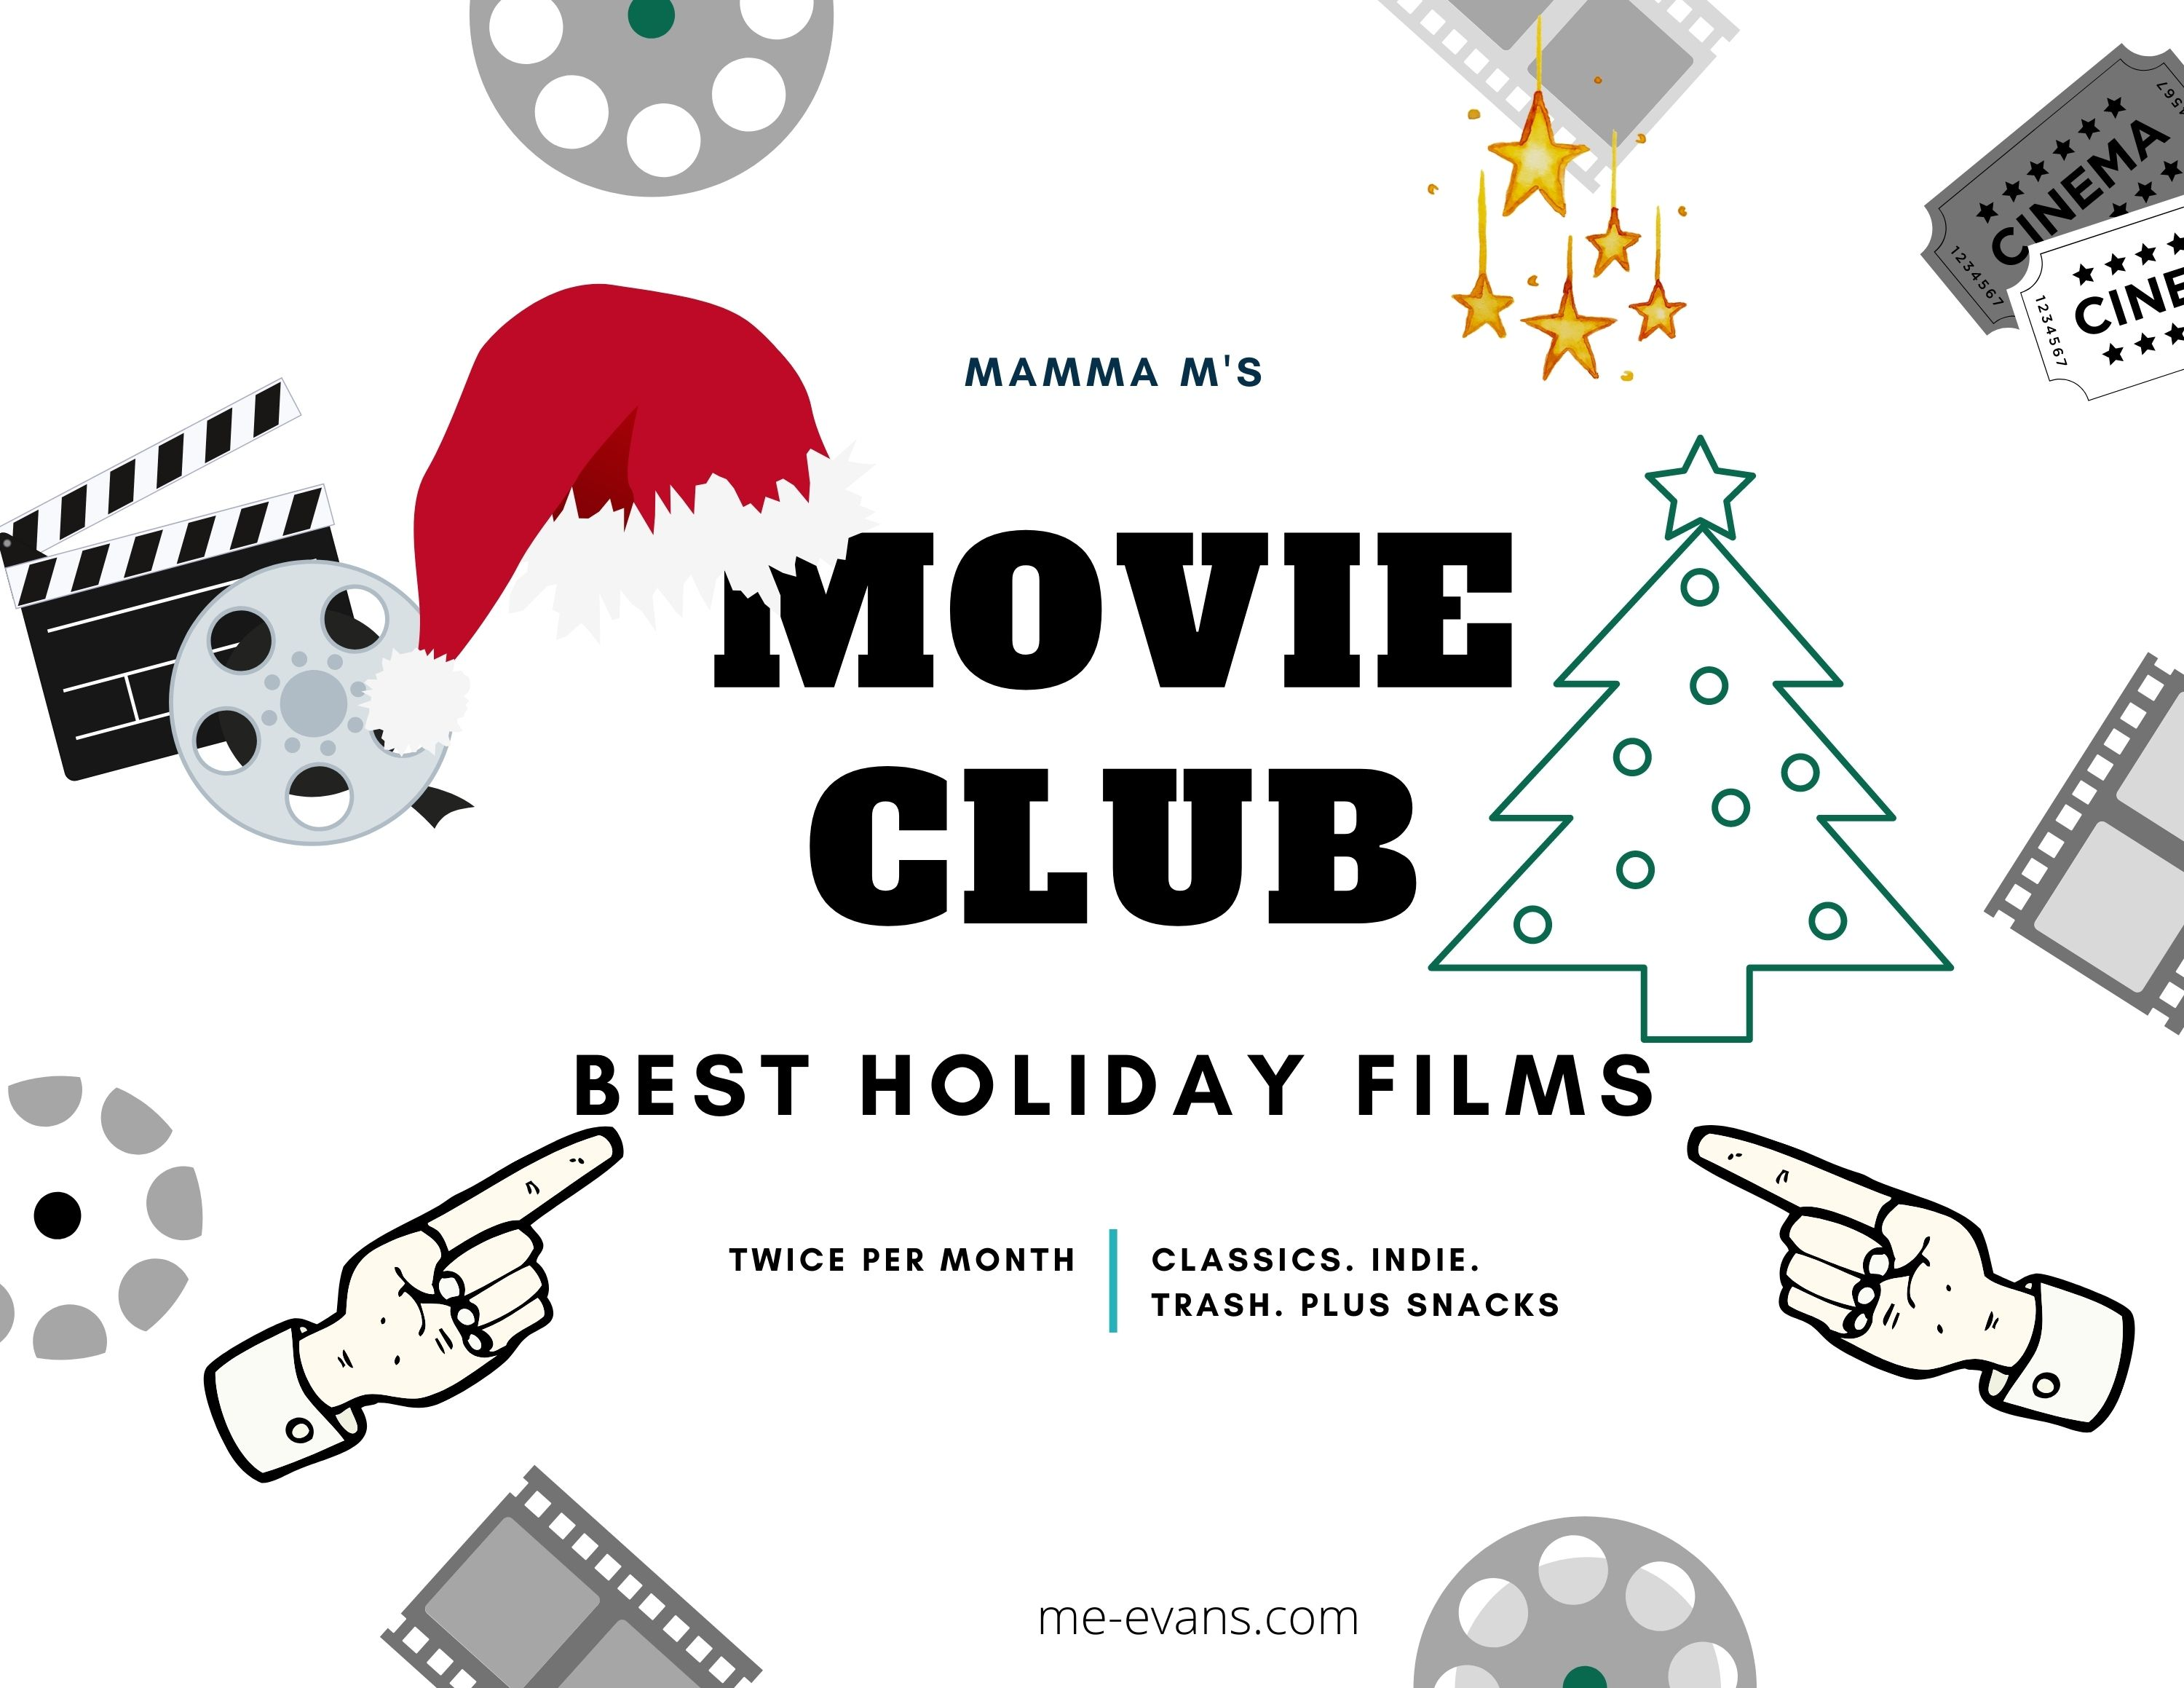 Mamma M's Movie Club: Holiday Movies to Watch This Week